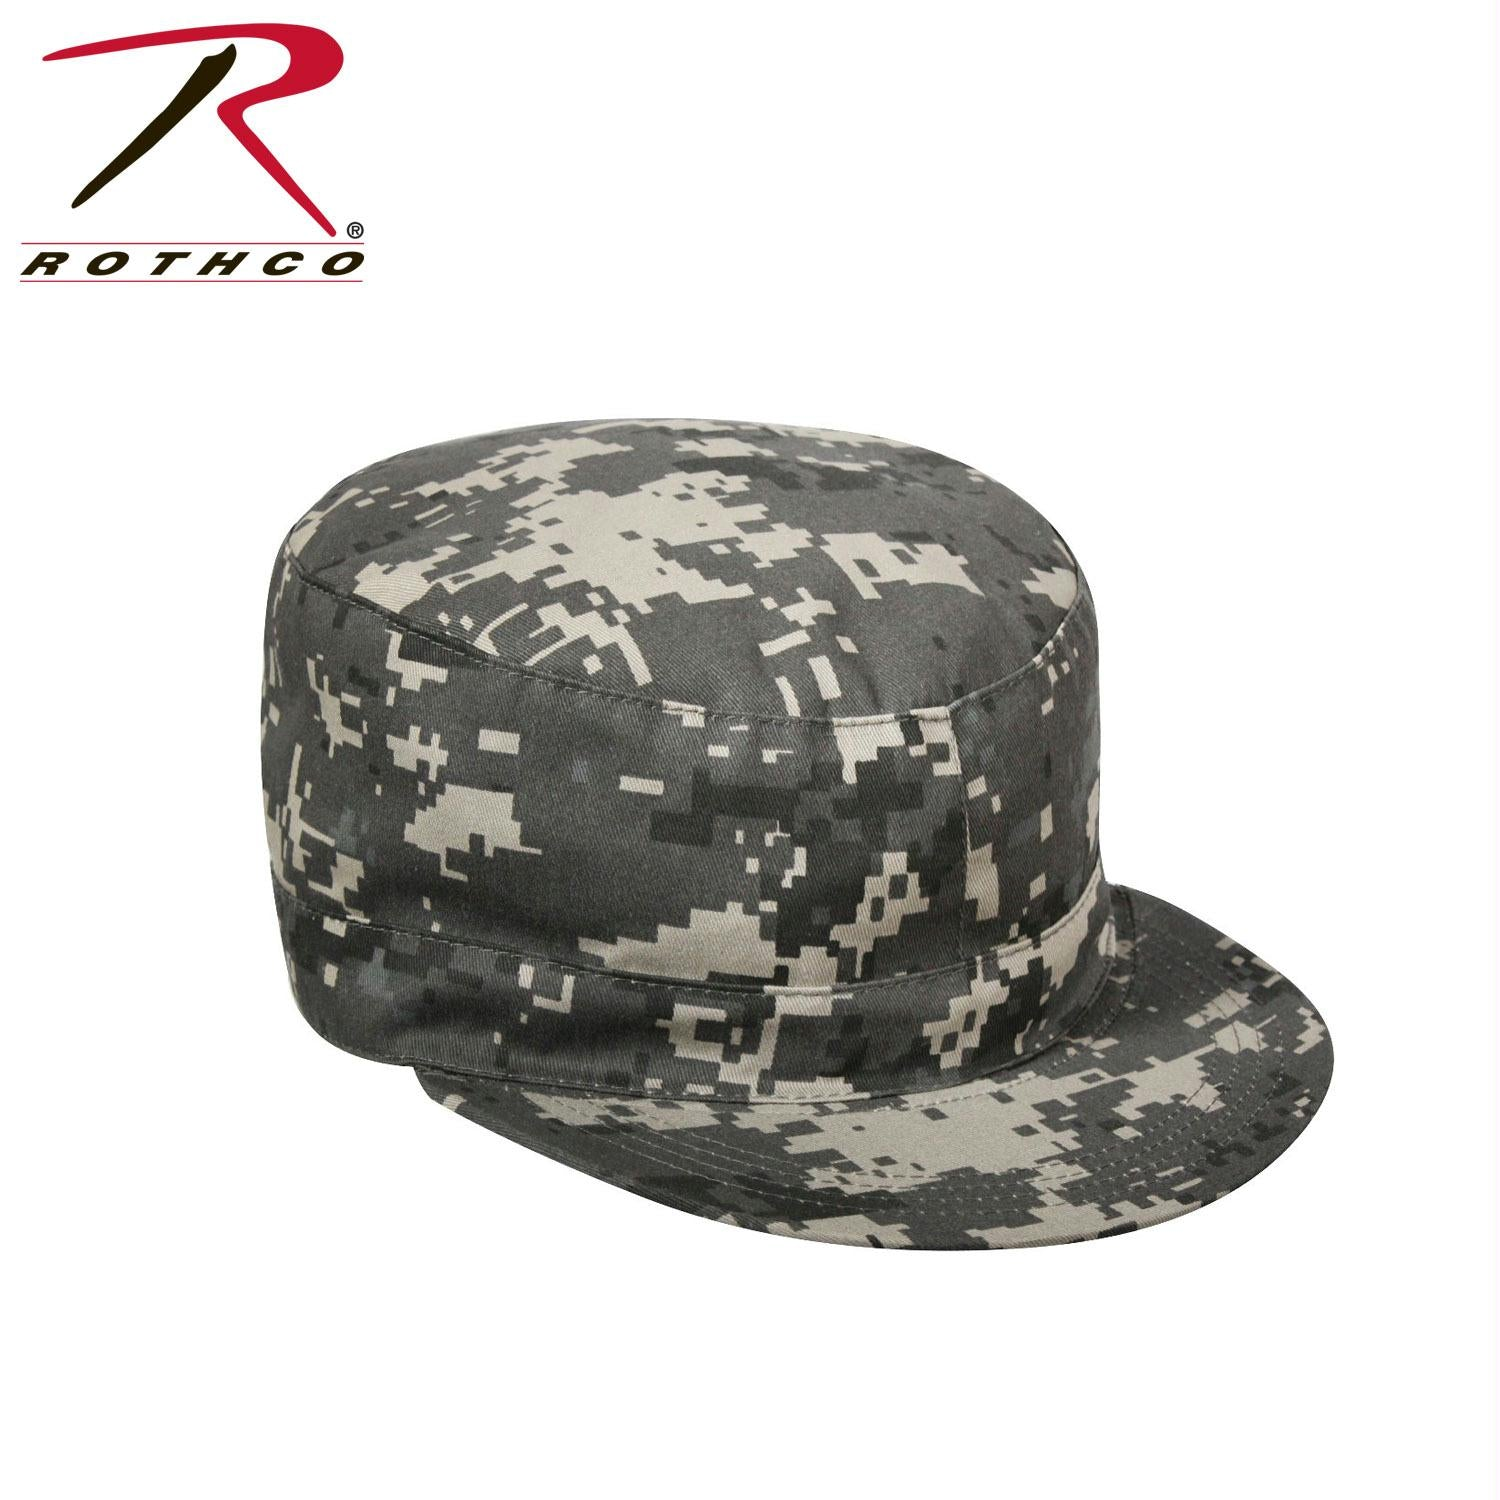 Rothco Camo Fatigue Caps - Subdued Urban Digital Camo / L